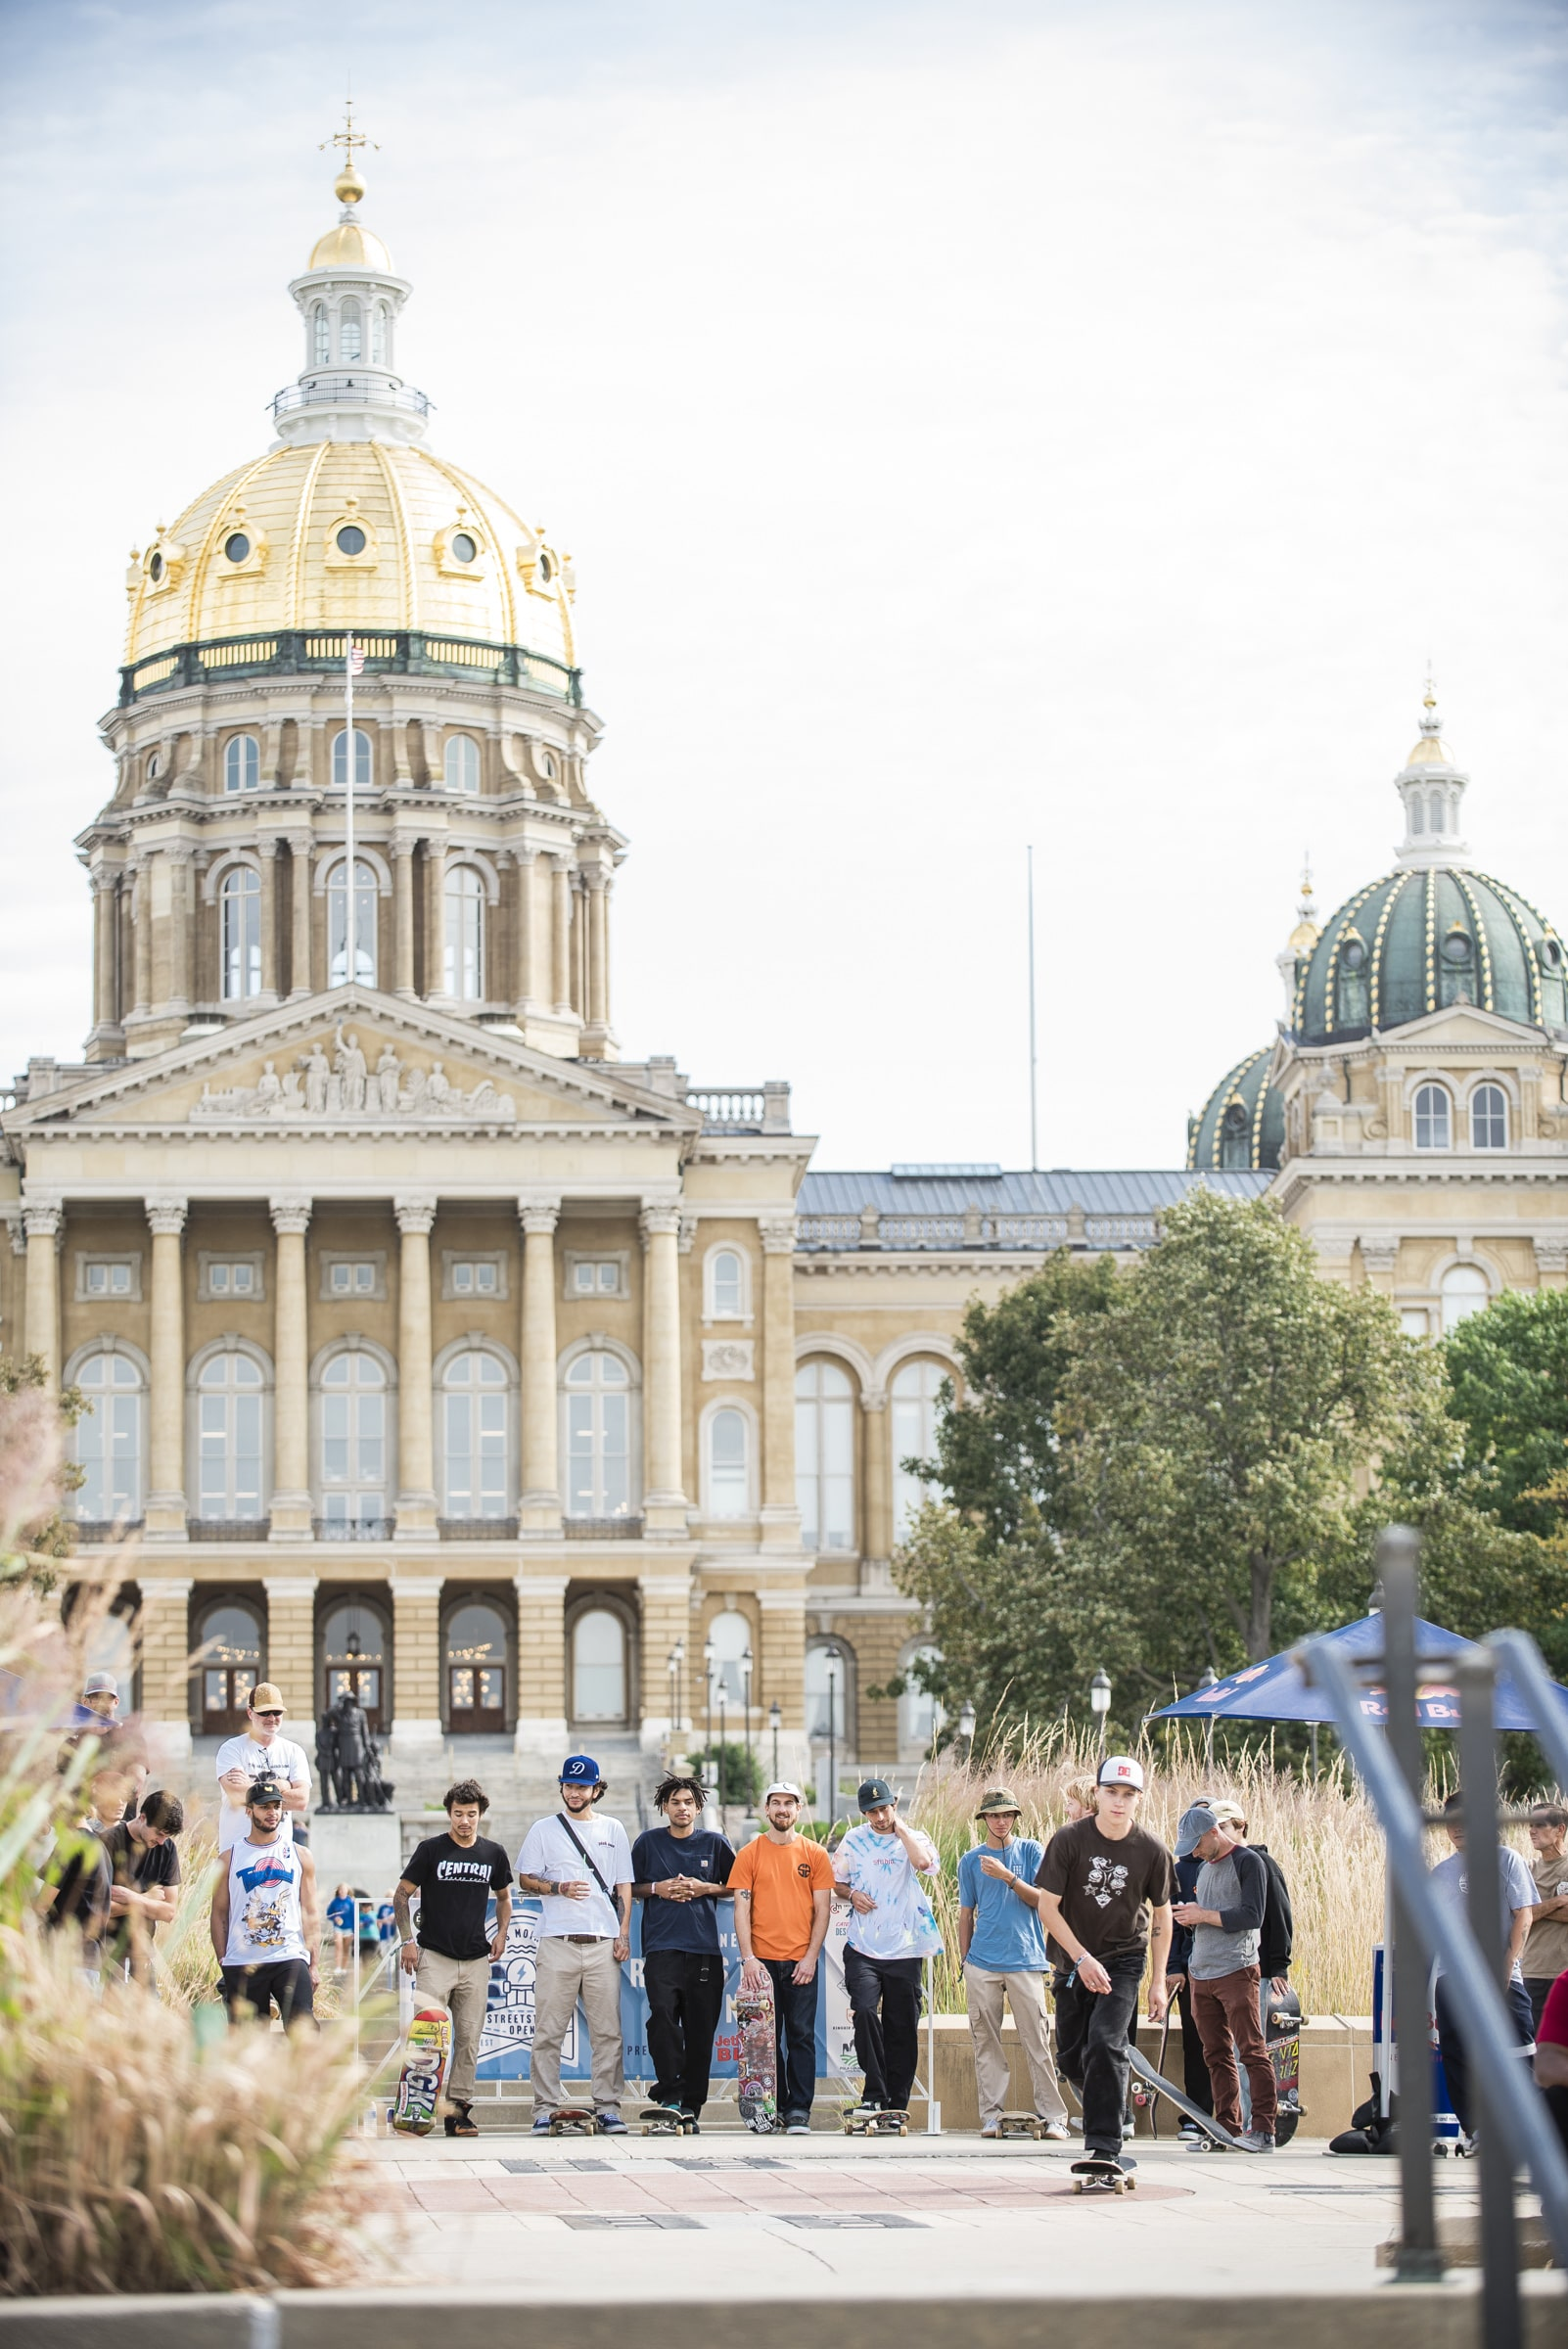 Des Moines Streetstyle Open 2021 - The Capitol